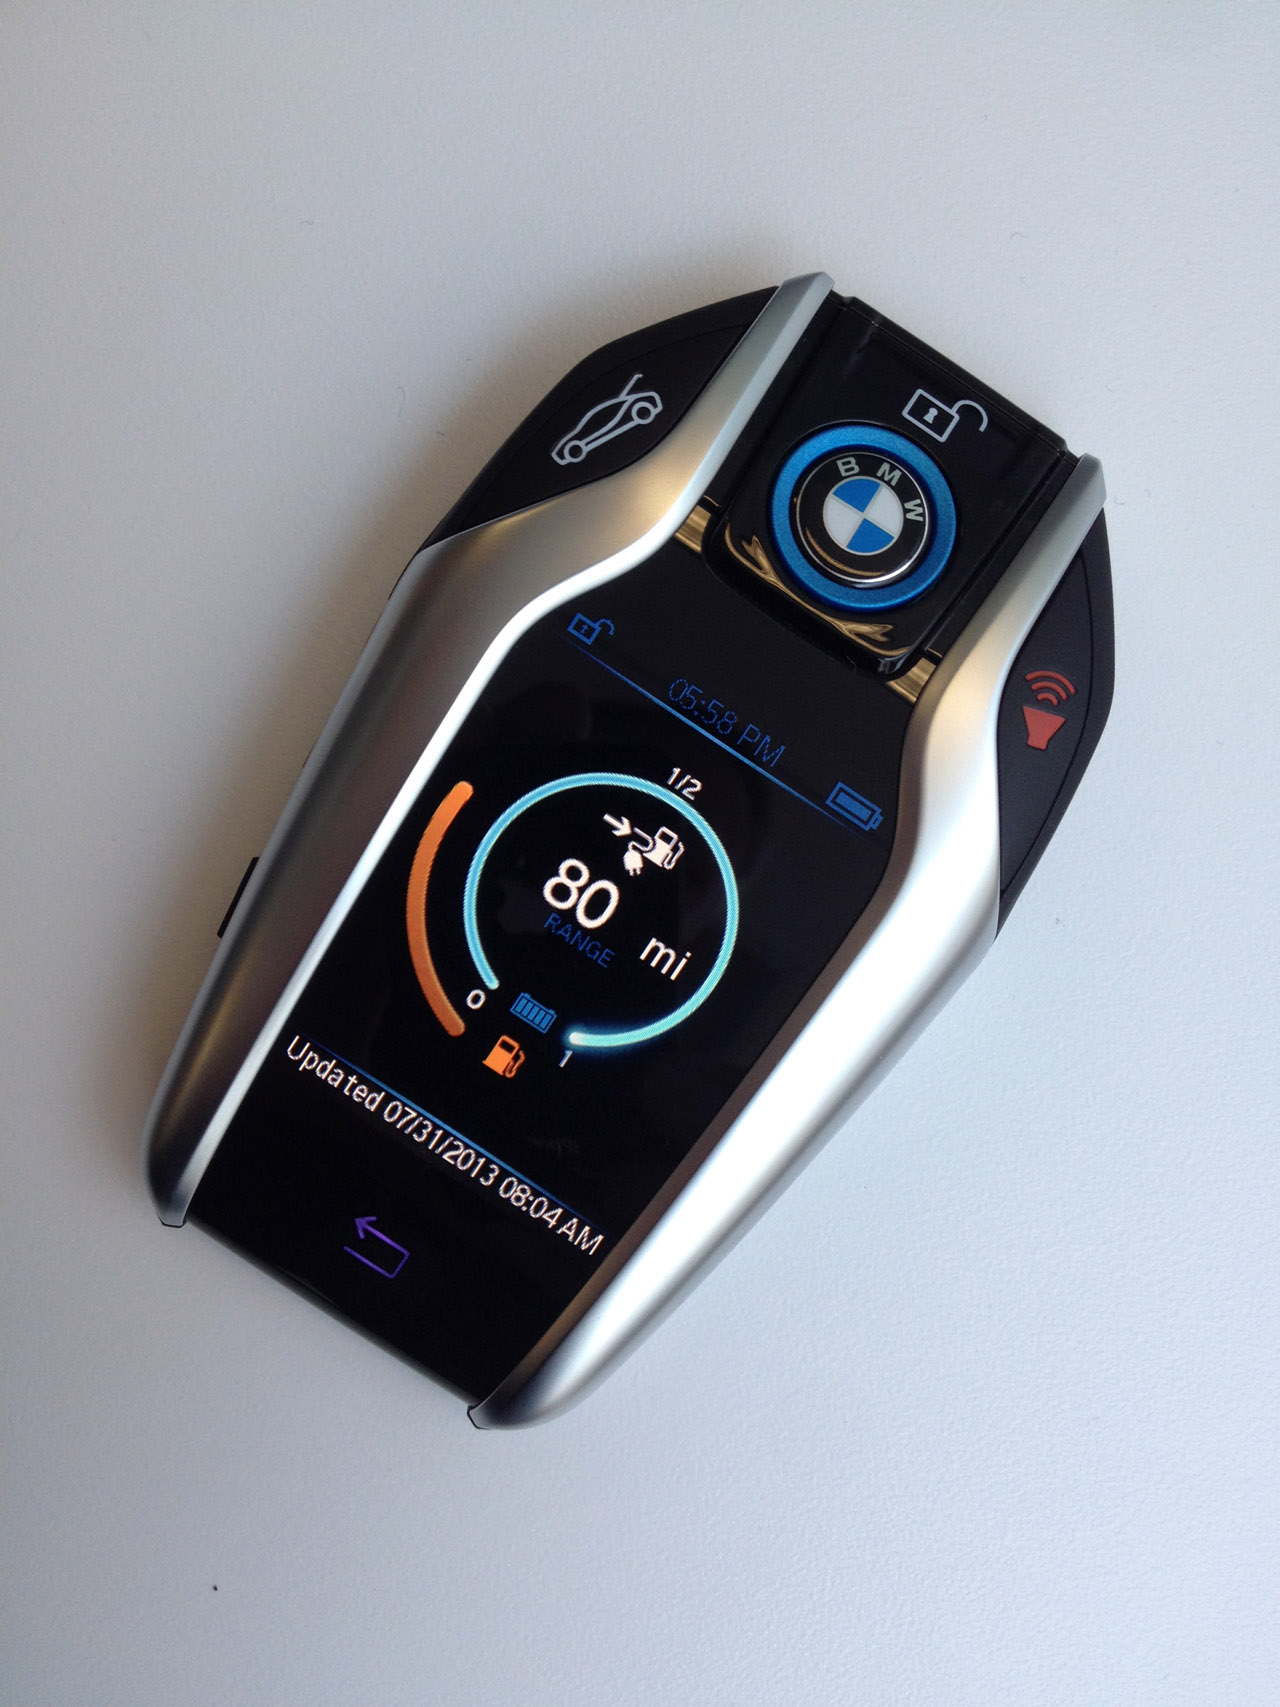 Bmw I8 Concours D Elegance Edition To Be Auctioned This